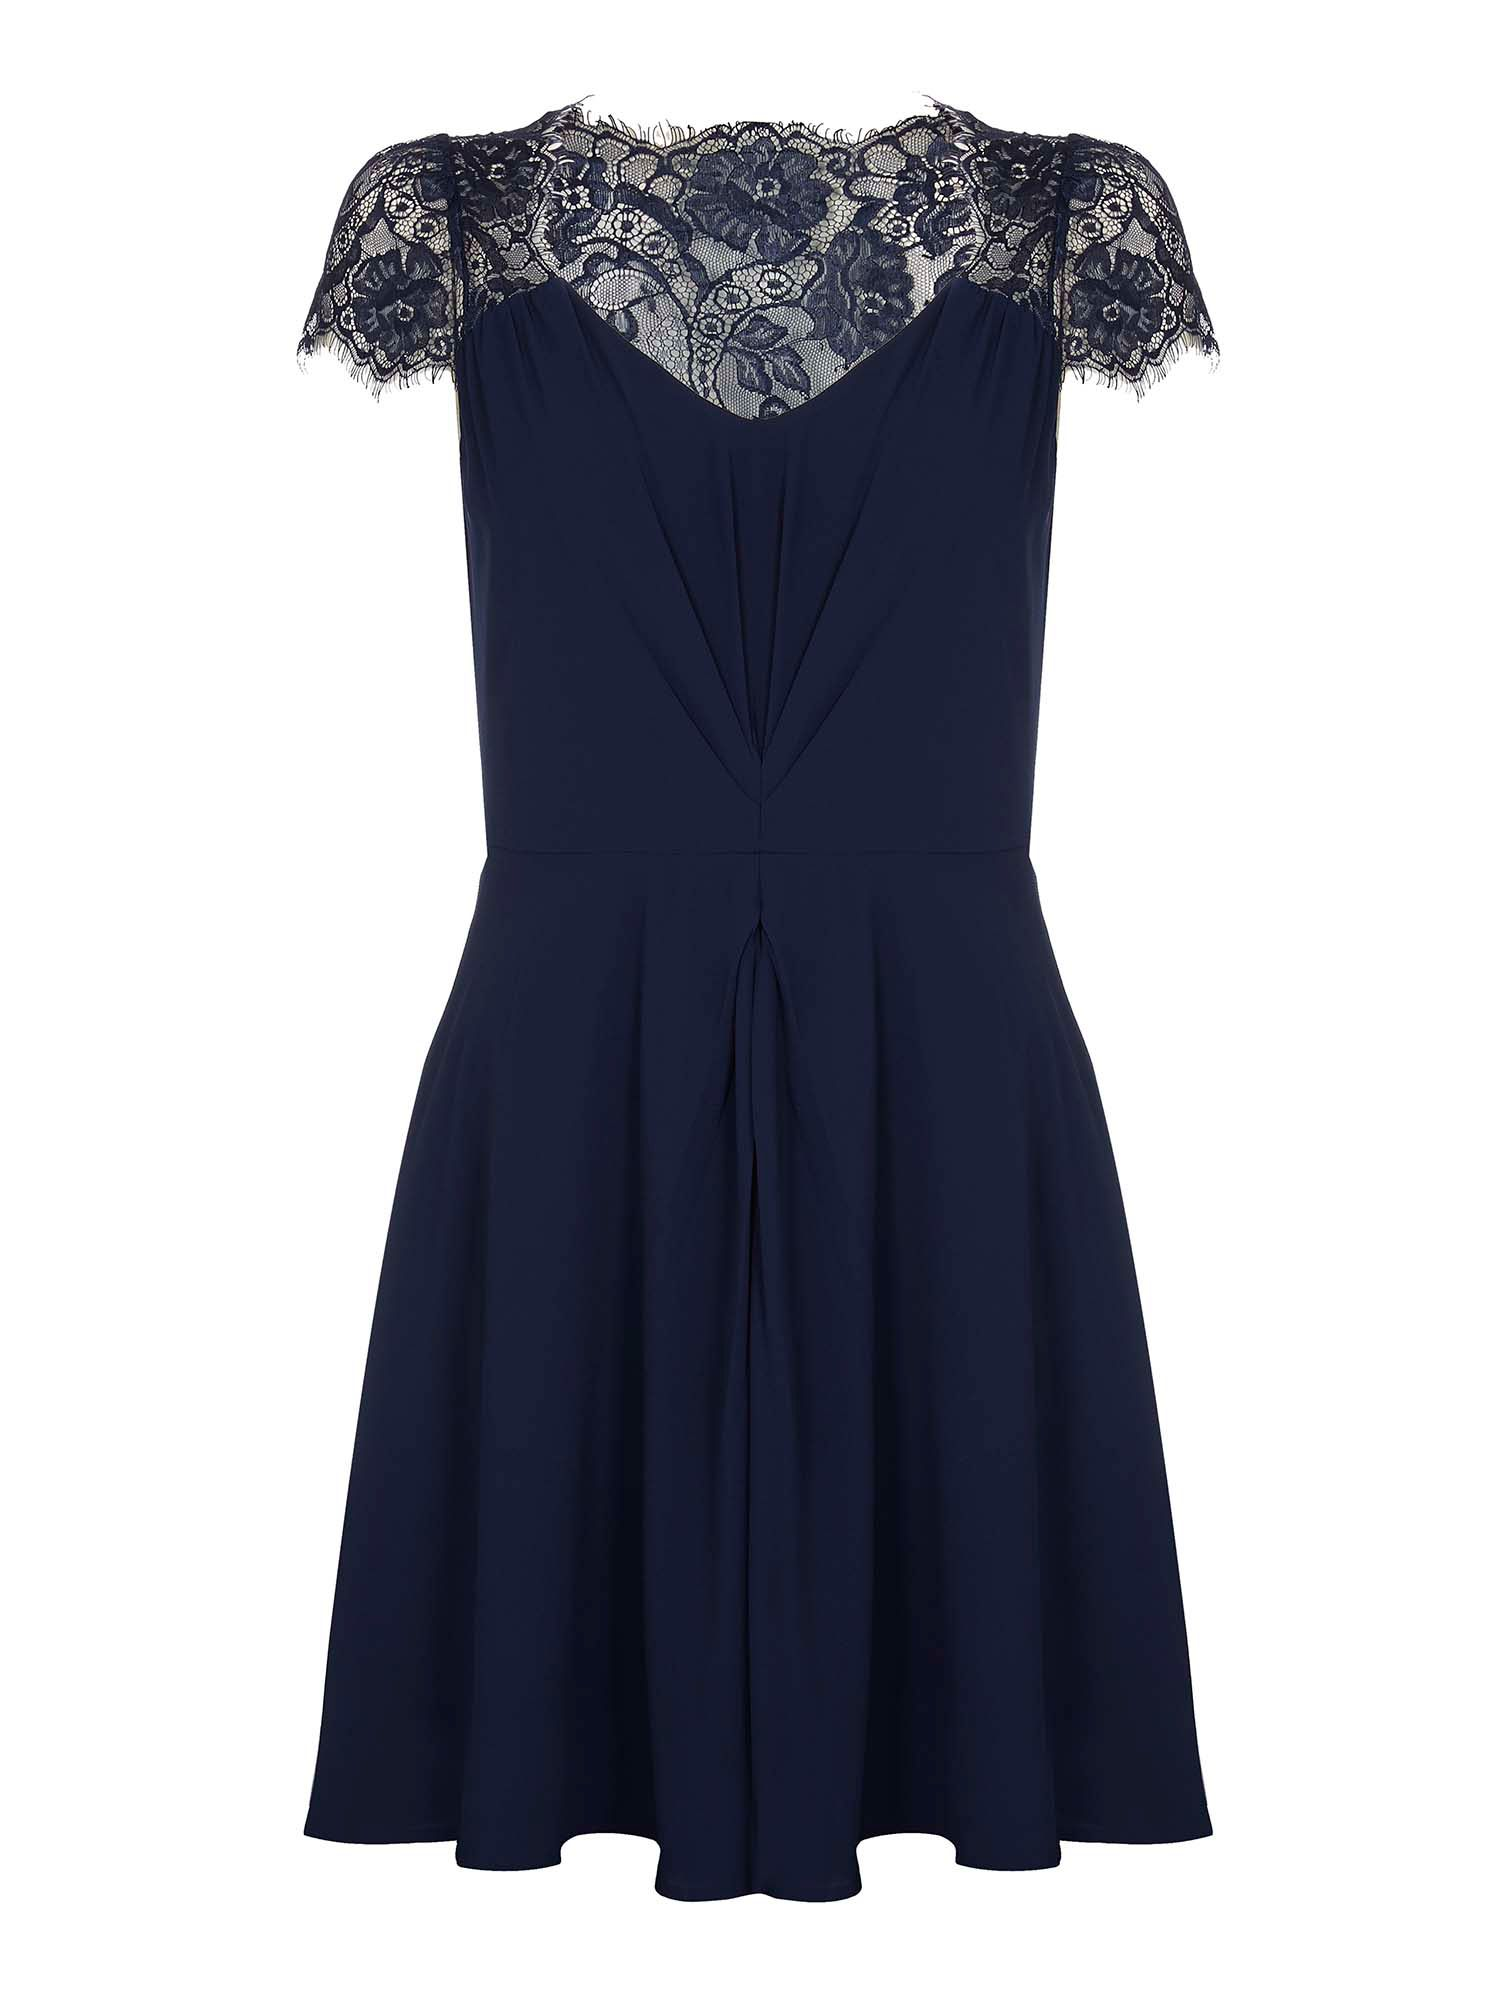 Yumi Lace Sleeve Party Dress, Dark Blue